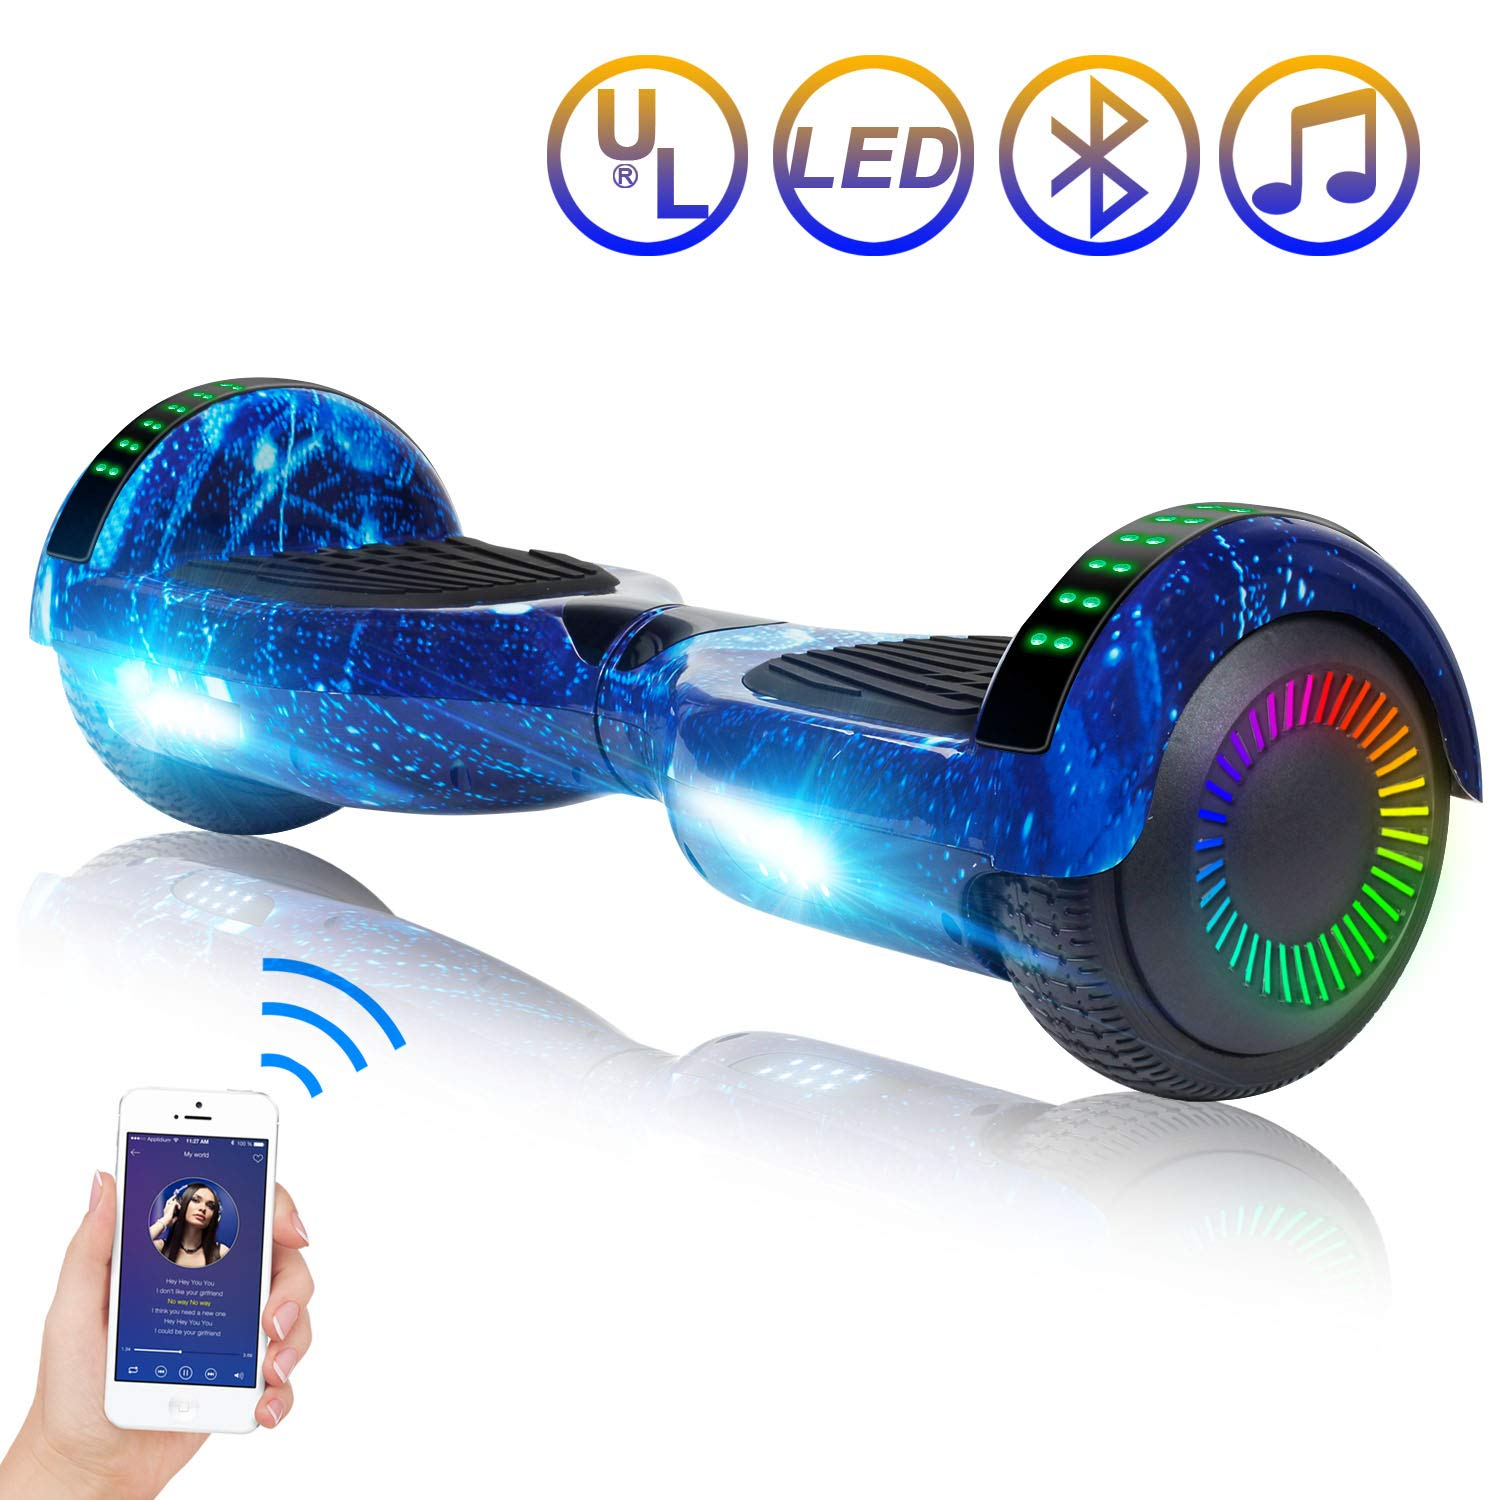 SISIGAD Hoverboard 6.5'' Two-Wheel Self Balancing Scooter with Bluetooth Speaker Electric Scooter for Adult Kids Gift UL 2272 Certified - Starry Sky by SISIGAD